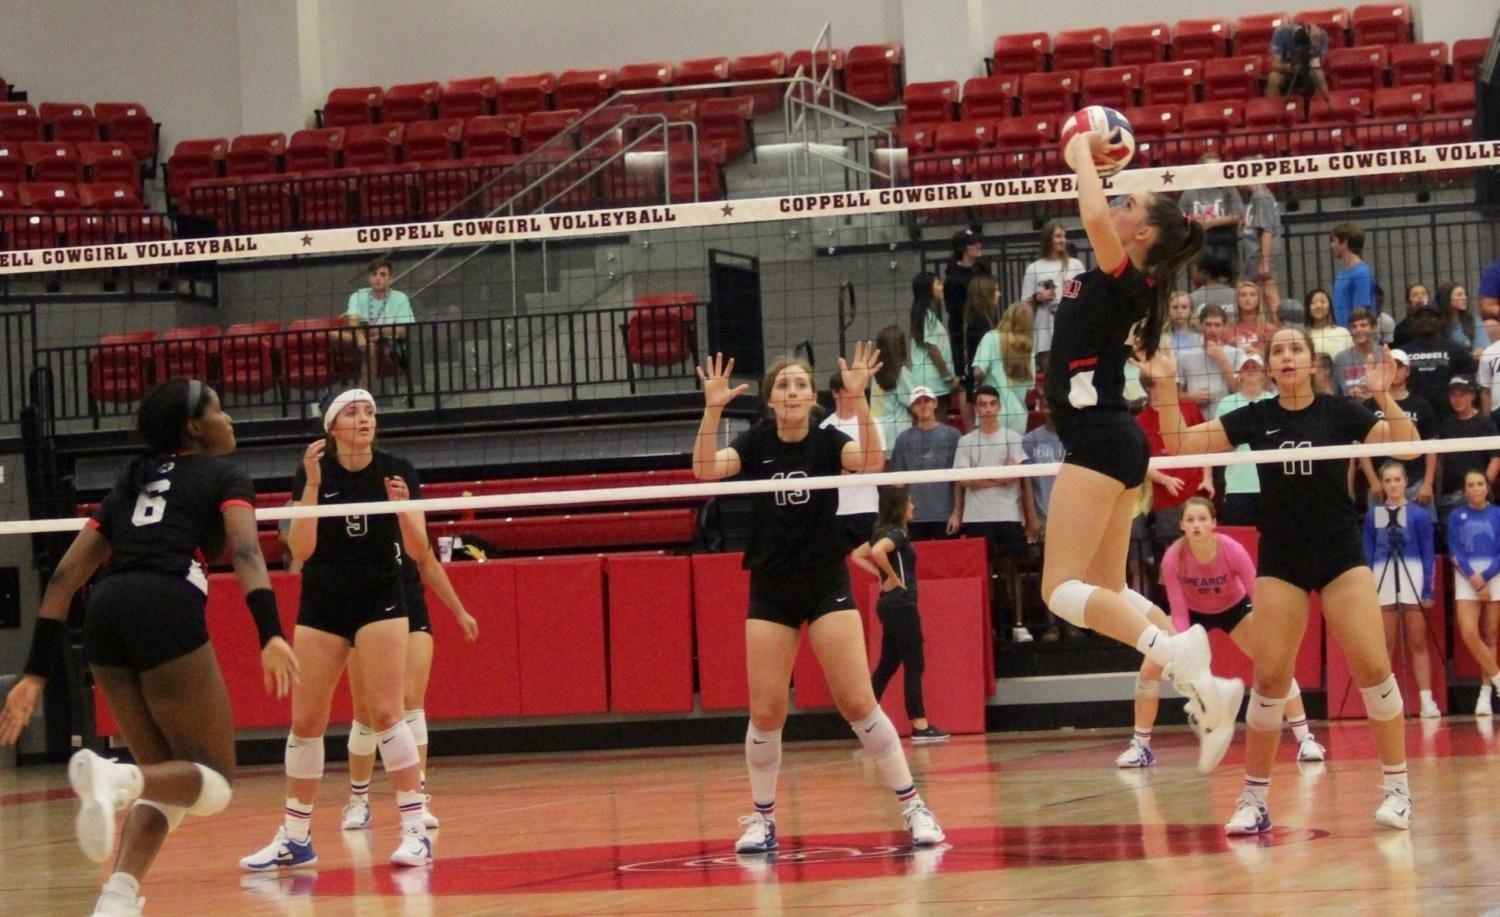 Coppell High School senior defensive specialist Ava Racz sets to junior Amarachi Osuji at the Coppell High School Arena against Pearce on Tuesday night. The Cowgirls defeated the Lady Mustangs, 25-21, 25-23, 24-26, 25-14, in their first home district game.